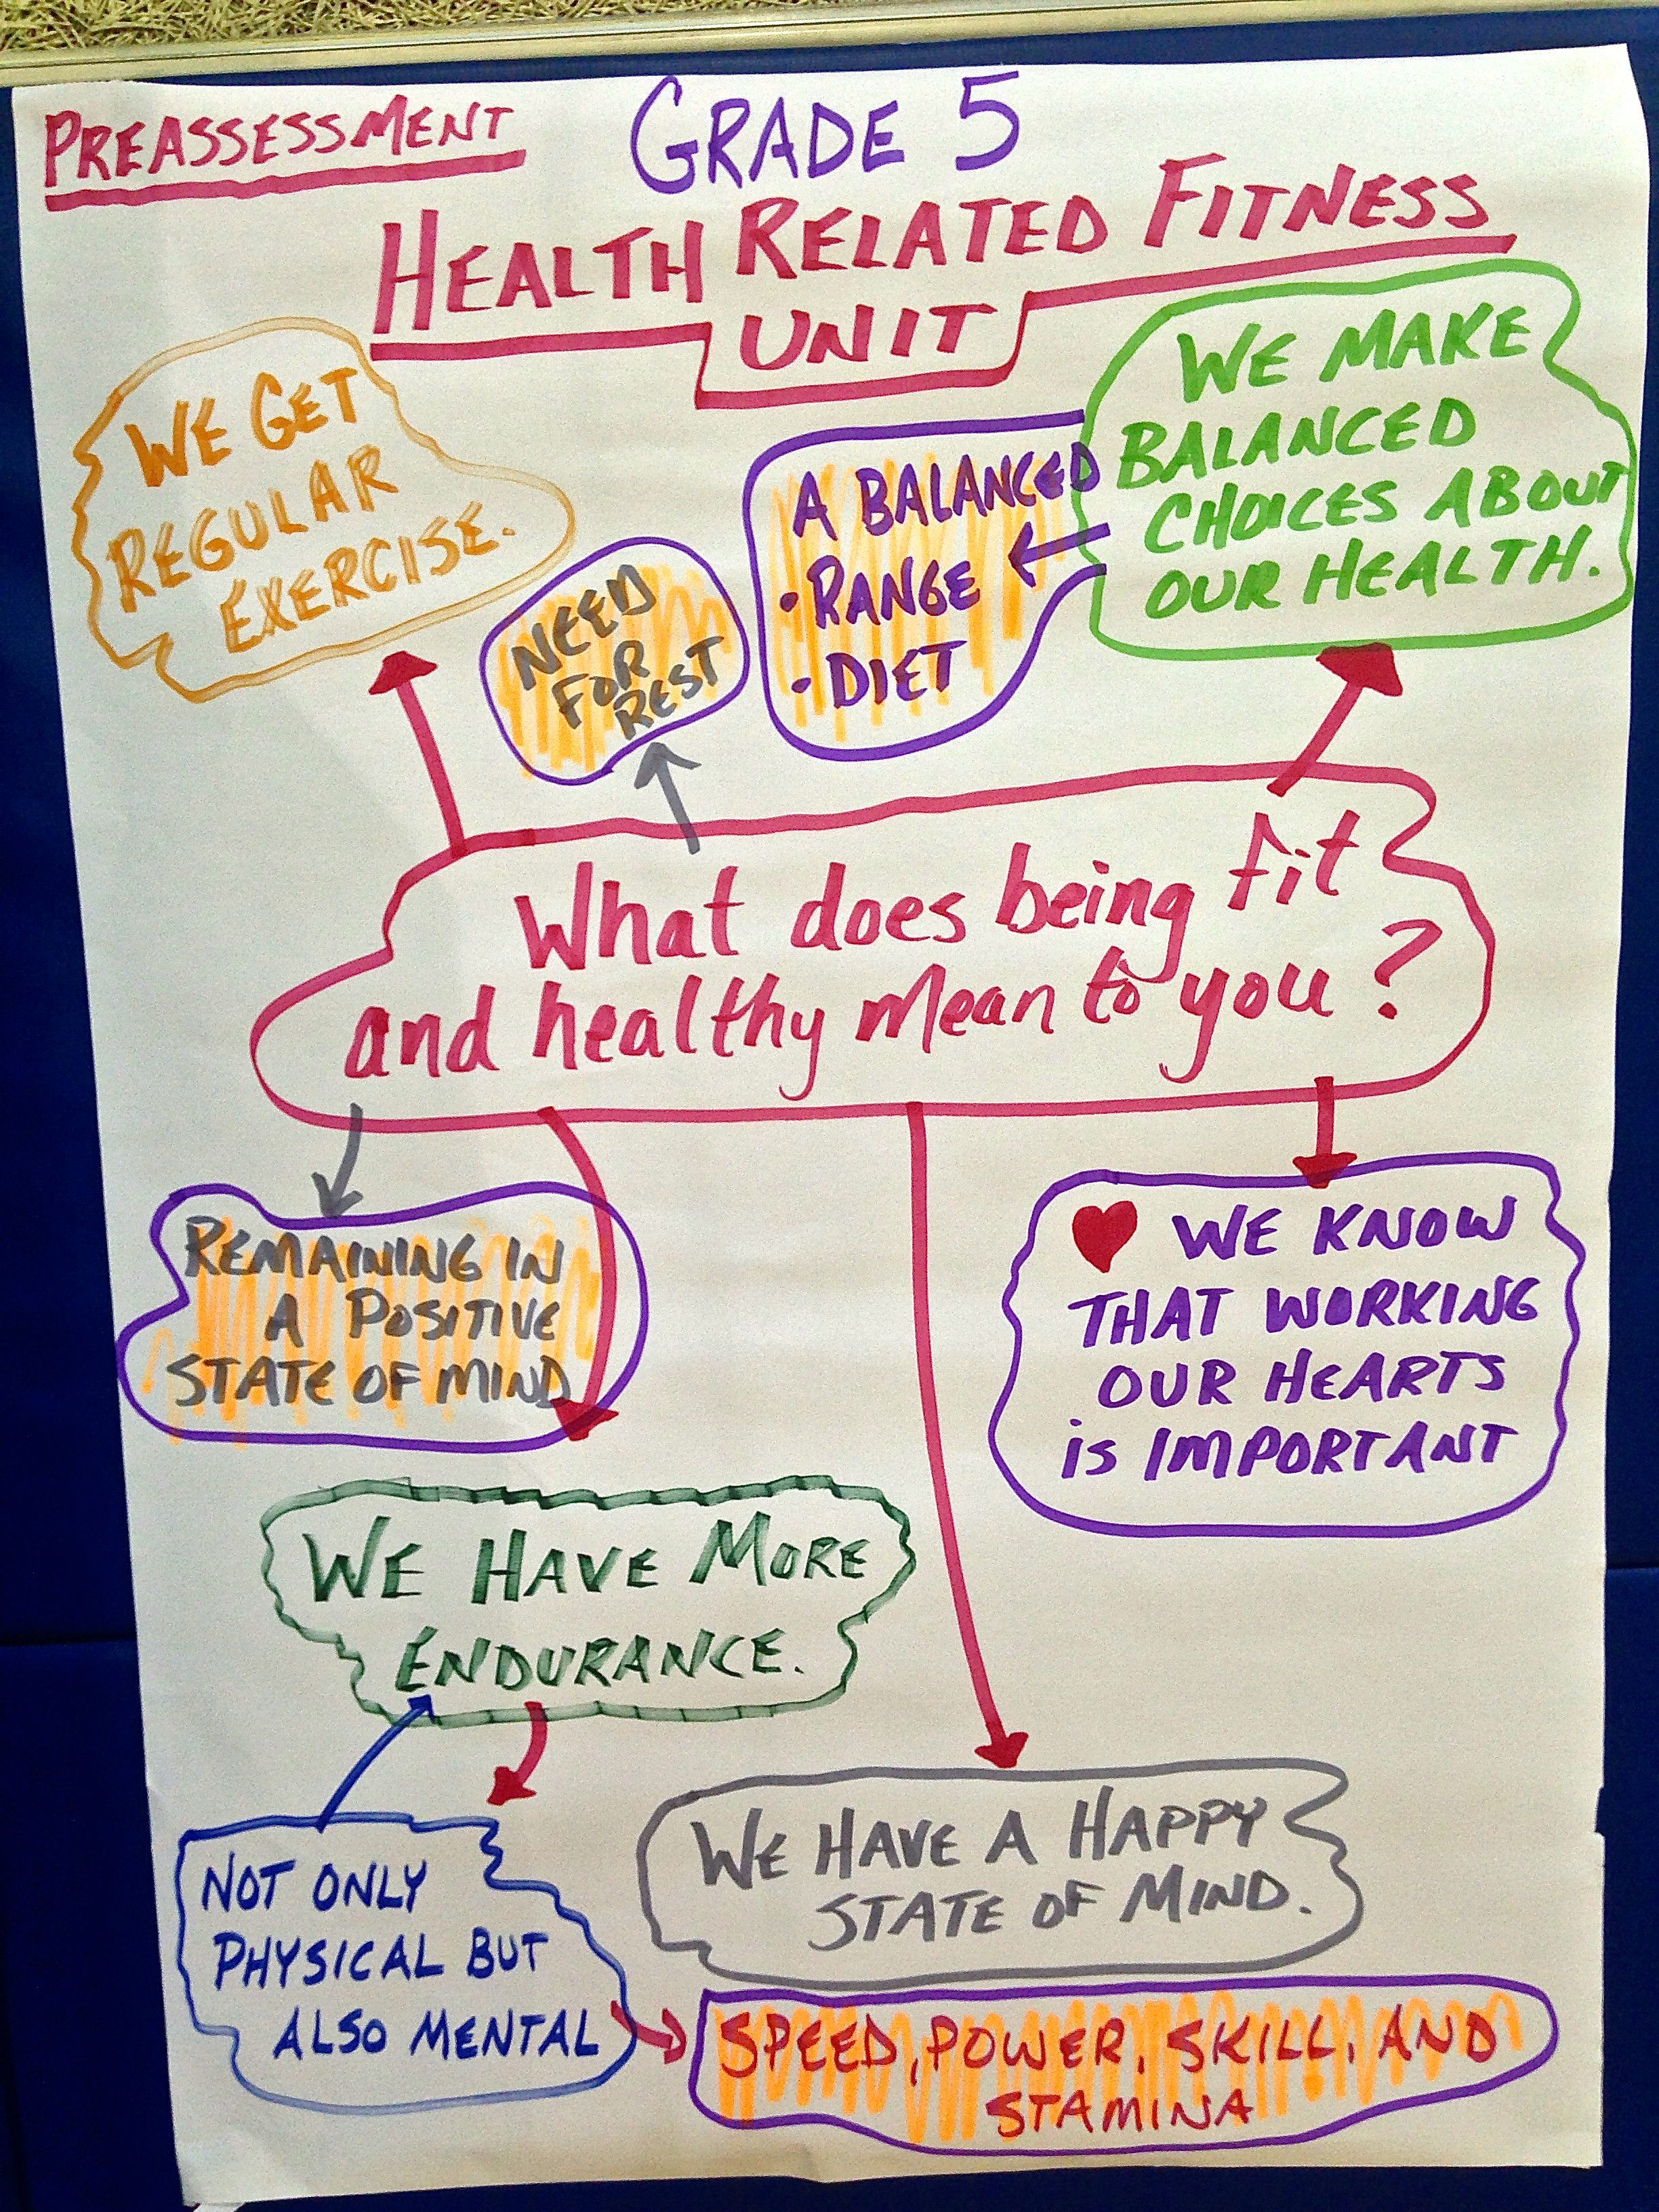 Student Generated Ideas About What Being Fit And Healthy